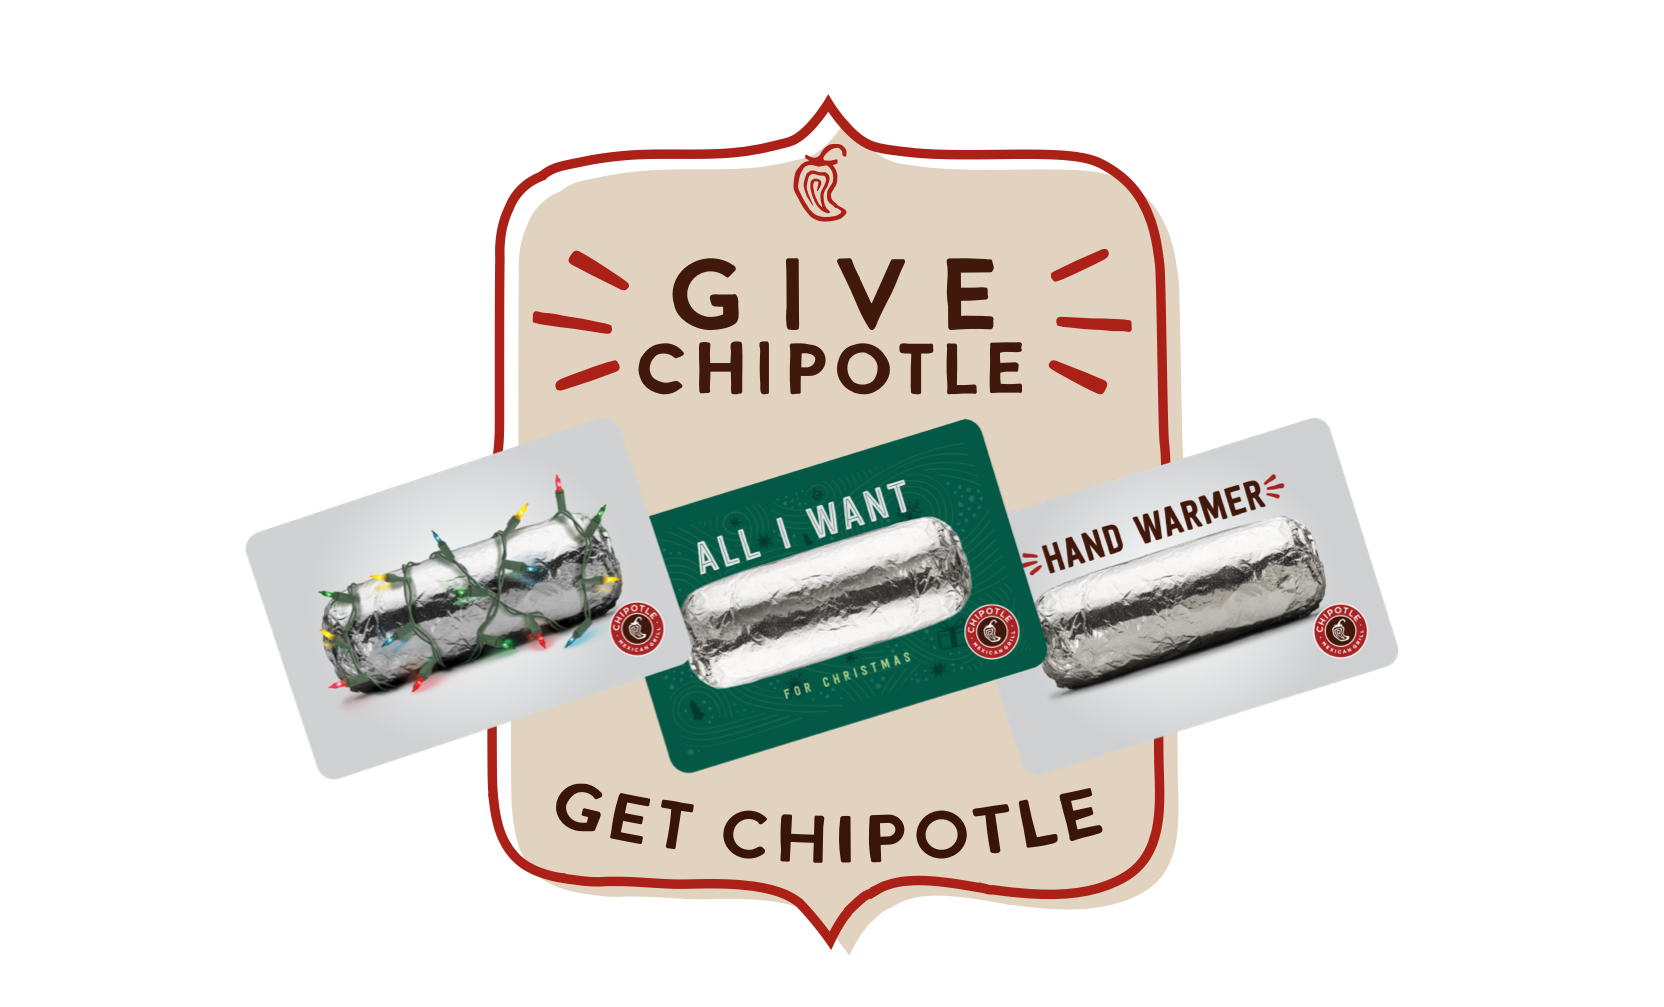 $30 Chipotle Gift Card and BOGO free entree coupon for $27 w/ chase reward YMMV